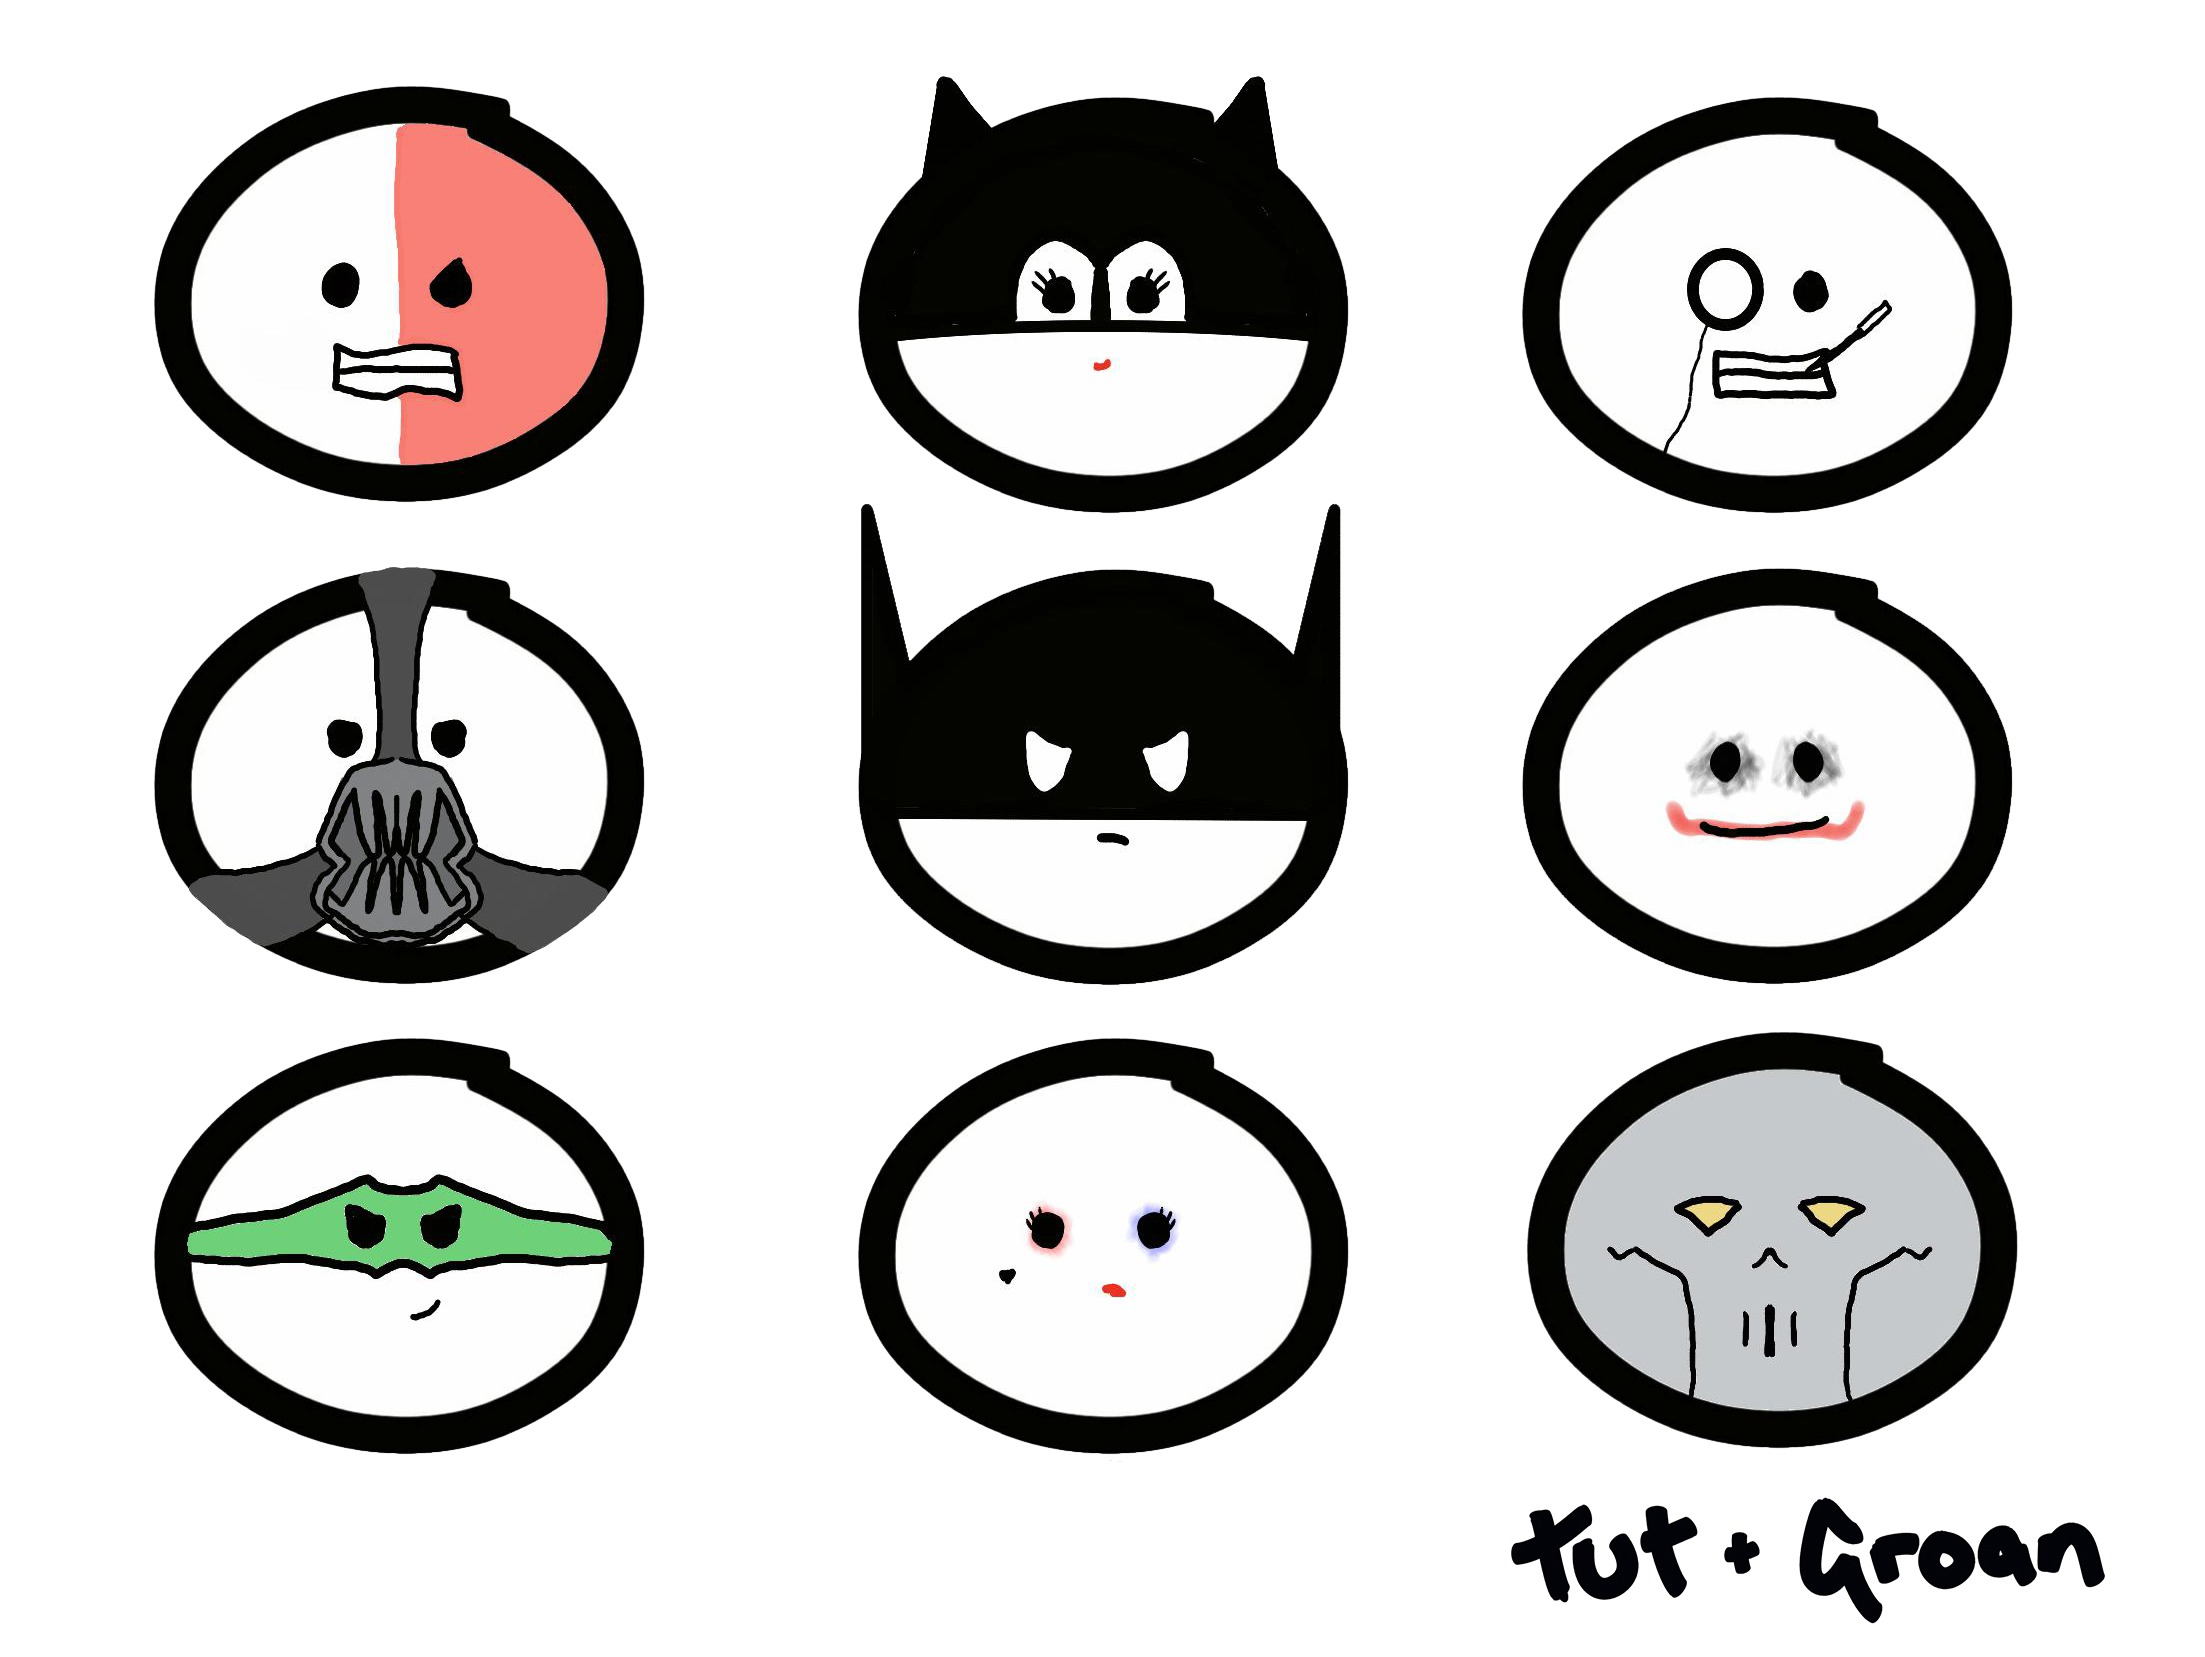 Tut and Groan Batman and His Villains collage